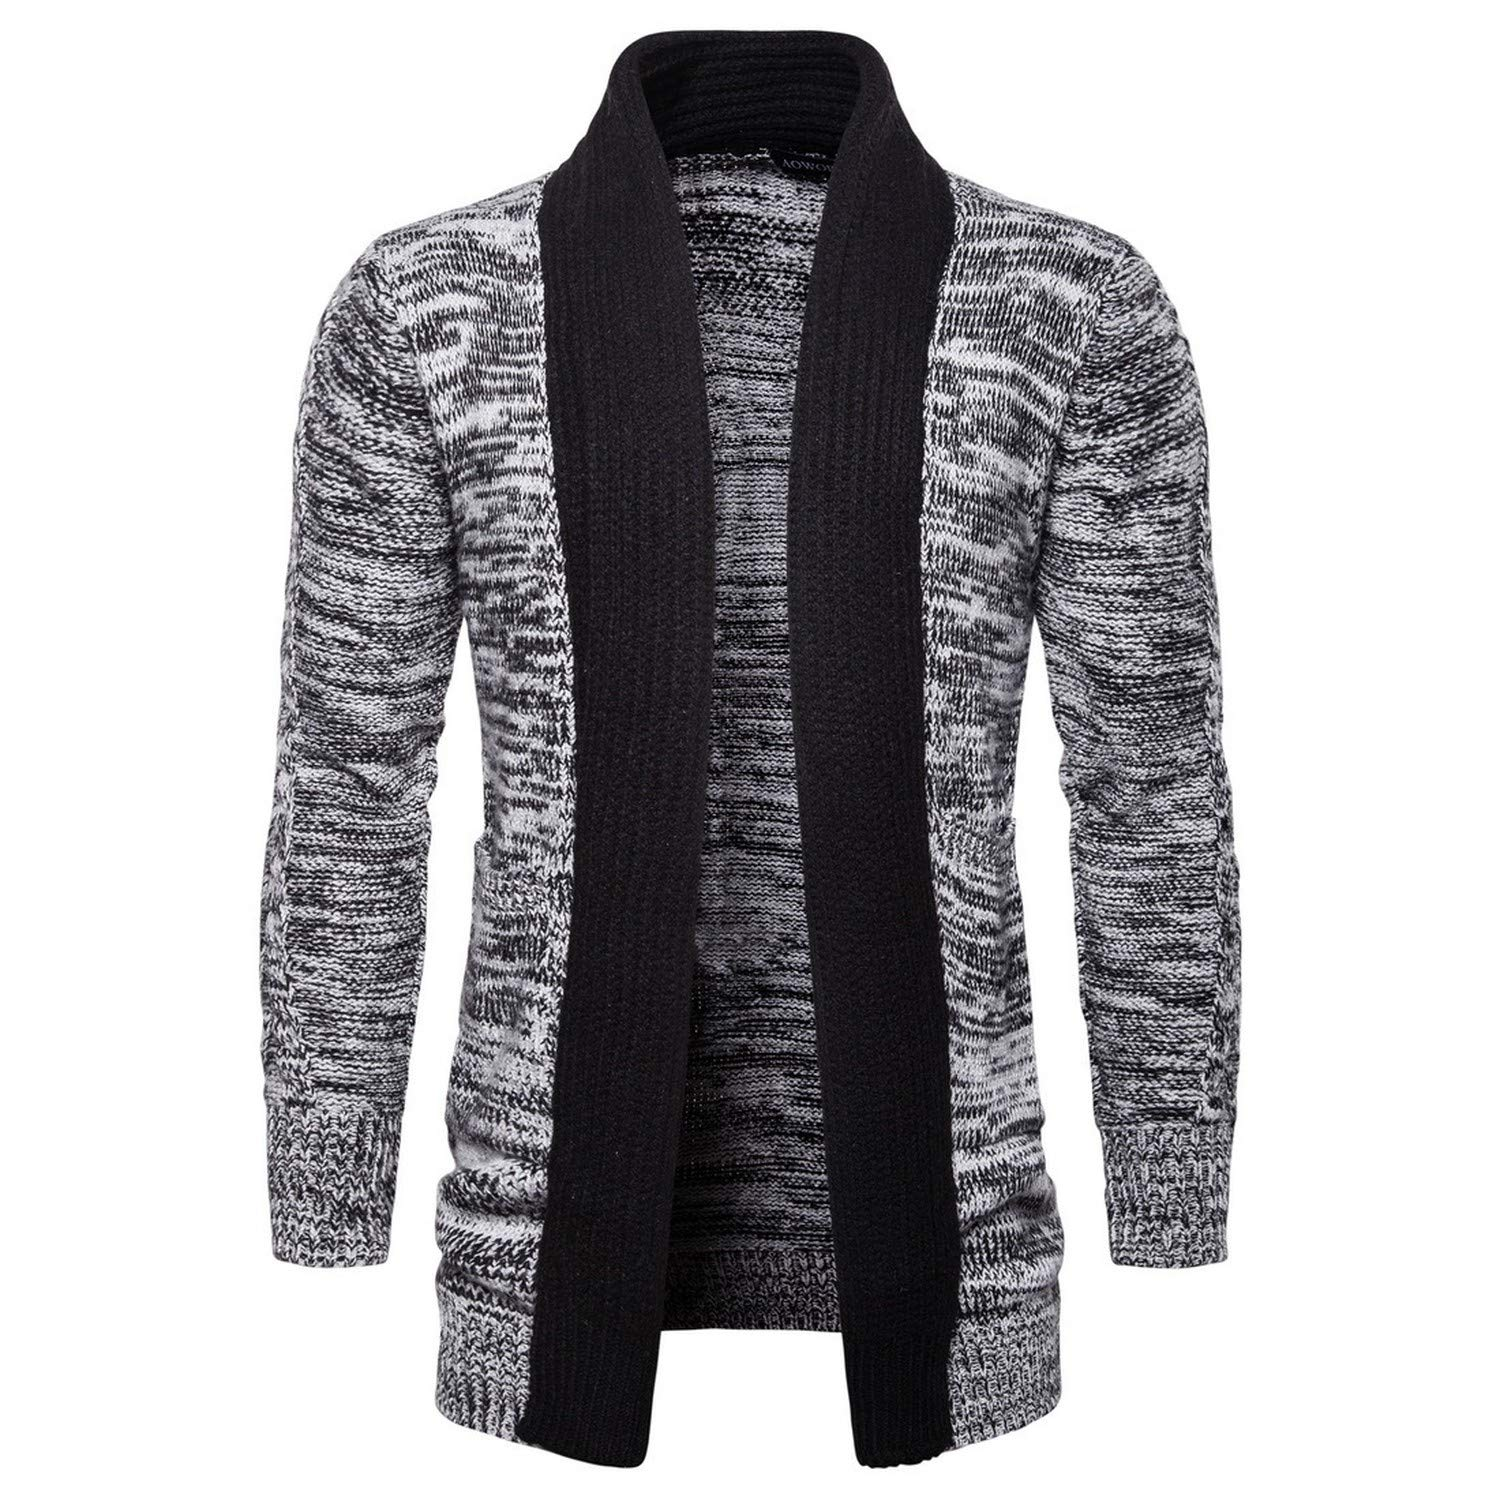 2018 Fashion Winter Long Knitted Sweater et Cardigan Christmas Men Sweaters